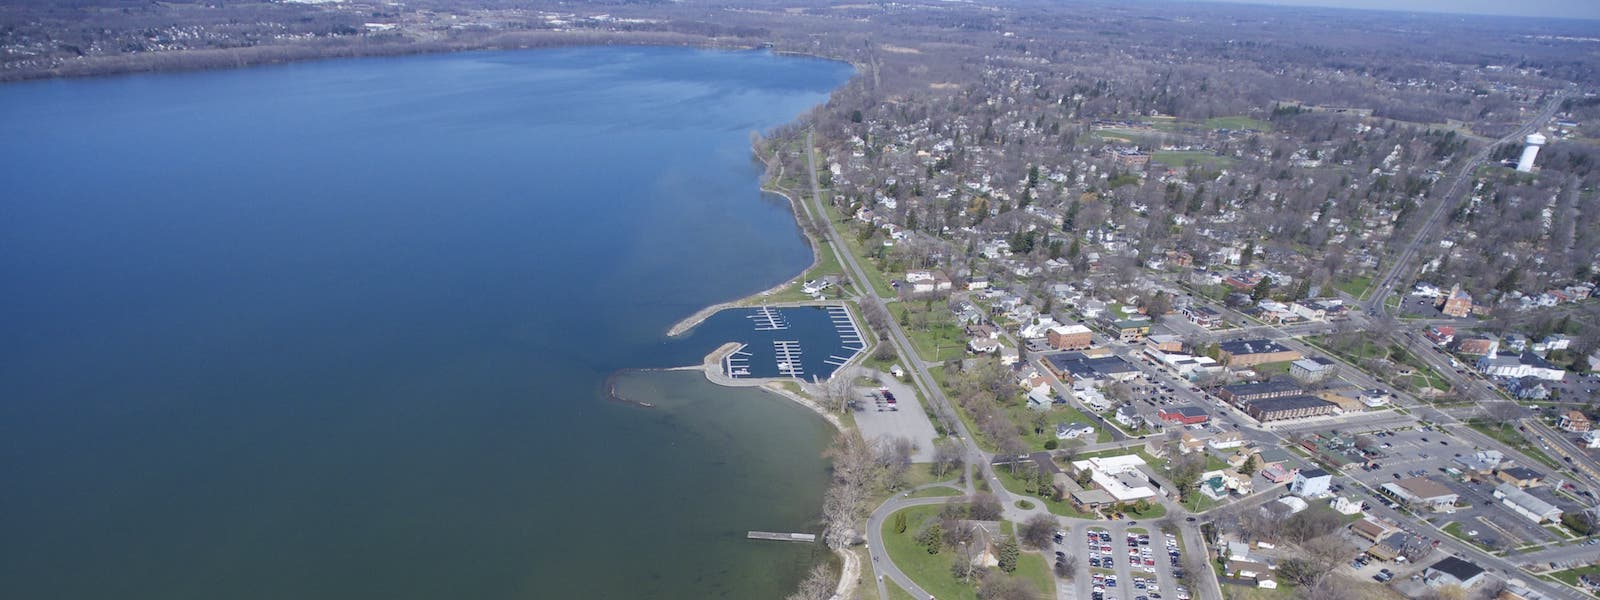 Onondaga Lake East Shoreline. Photo Courtesy of Indigenous Values Initiative